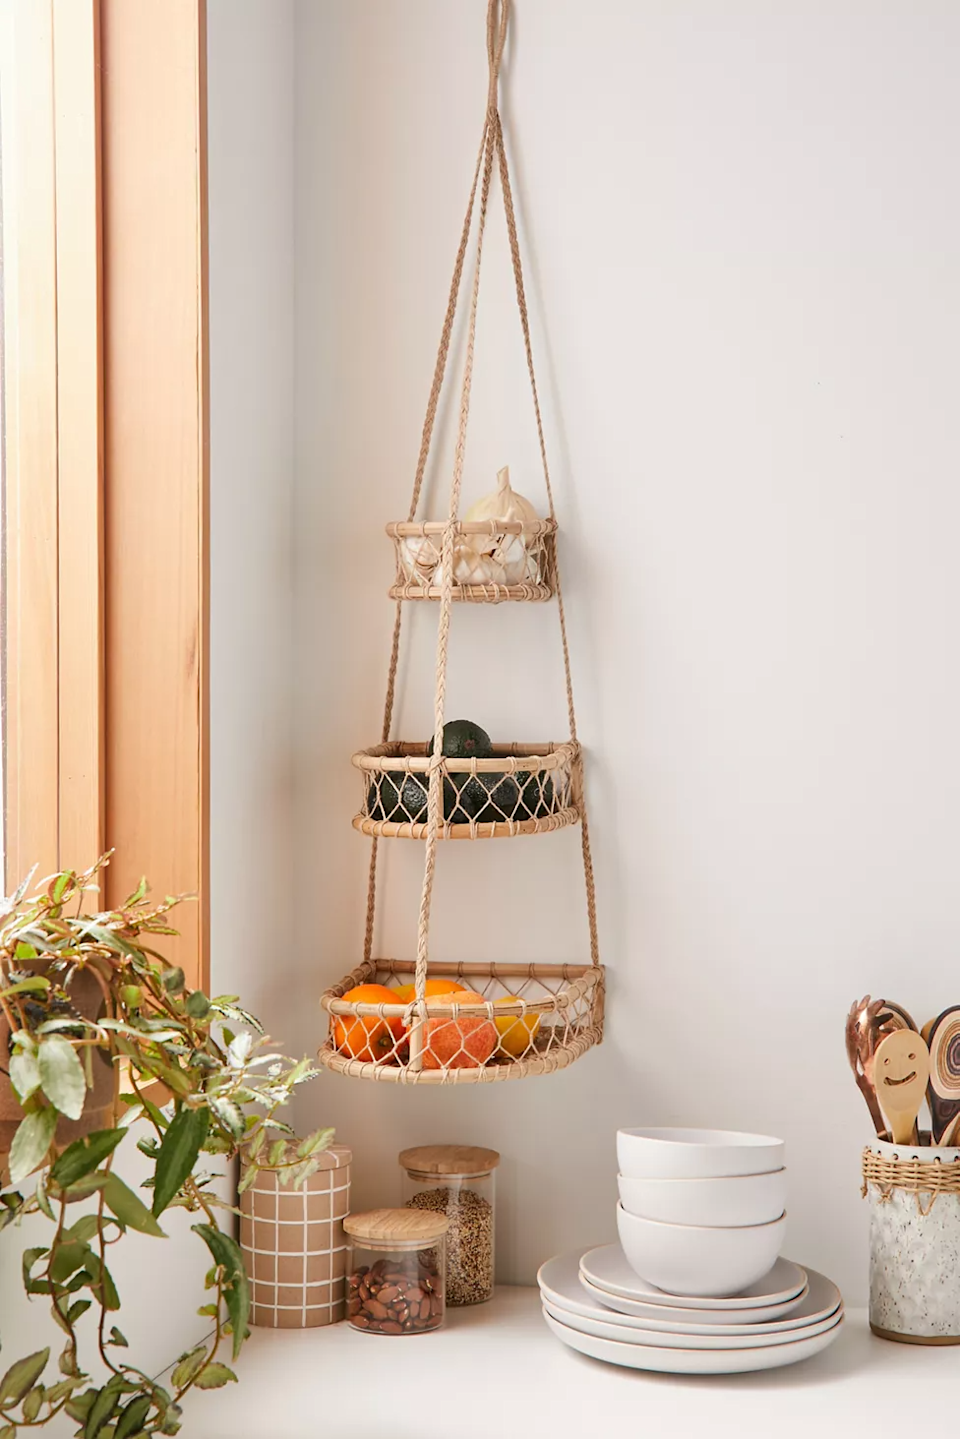 "<h3><a href=""https://www.urbanoutfitters.com/shop/molly-boho-3-tier-hanging-basket"" rel=""nofollow noopener"" target=""_blank"" data-ylk=""slk:Molly Boho 3-Tier Hanging Basket"" class=""link rapid-noclick-resp"">Molly Boho 3-Tier Hanging Basket</a></h3> <br><strong>When your kitchen countertop space is limited: </strong>Take advantage of empty wall space and hang these chic boho style woven baskets to house your fruits and veg.<br><br><strong>Wayfair</strong> Dorn Wall Storage Organizer With Baskets, Set of 2, $, available at <a href=""https://go.skimresources.com/?id=30283X879131&url=https%3A%2F%2Fwww.wayfair.com%2Fstorage-organization%2Fpdp%2Fgracie-oaks-dorn-wall-storage-organizer-with-baskets-w002755649.html"" rel=""nofollow noopener"" target=""_blank"" data-ylk=""slk:Gracie Oaks"" class=""link rapid-noclick-resp"">Gracie Oaks</a>"